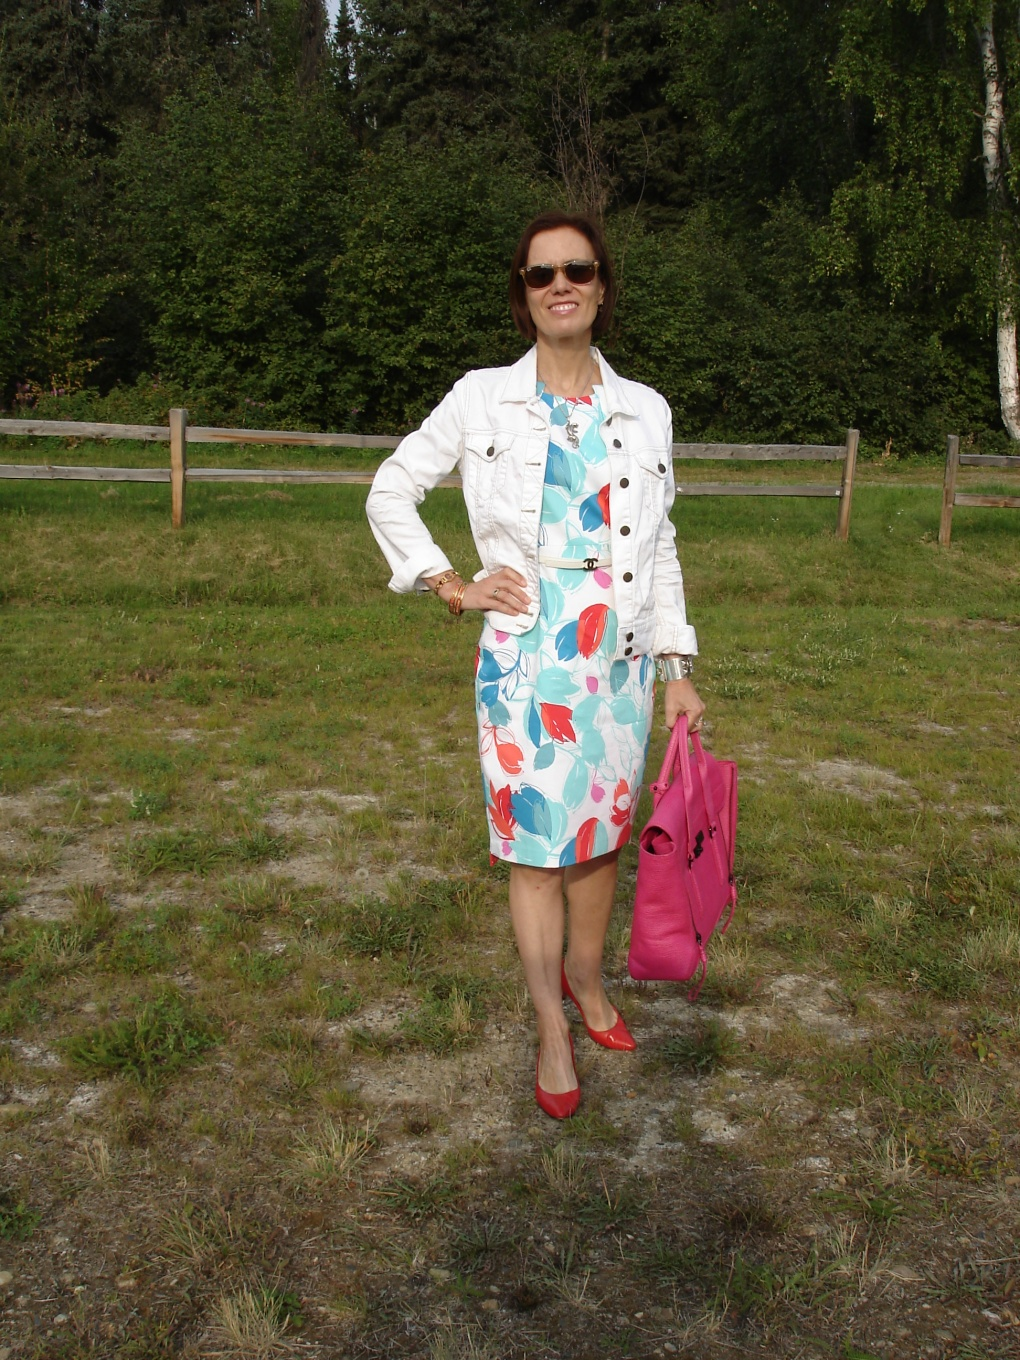 #over40fashion mature woman in a white denim jacket over sheath dress